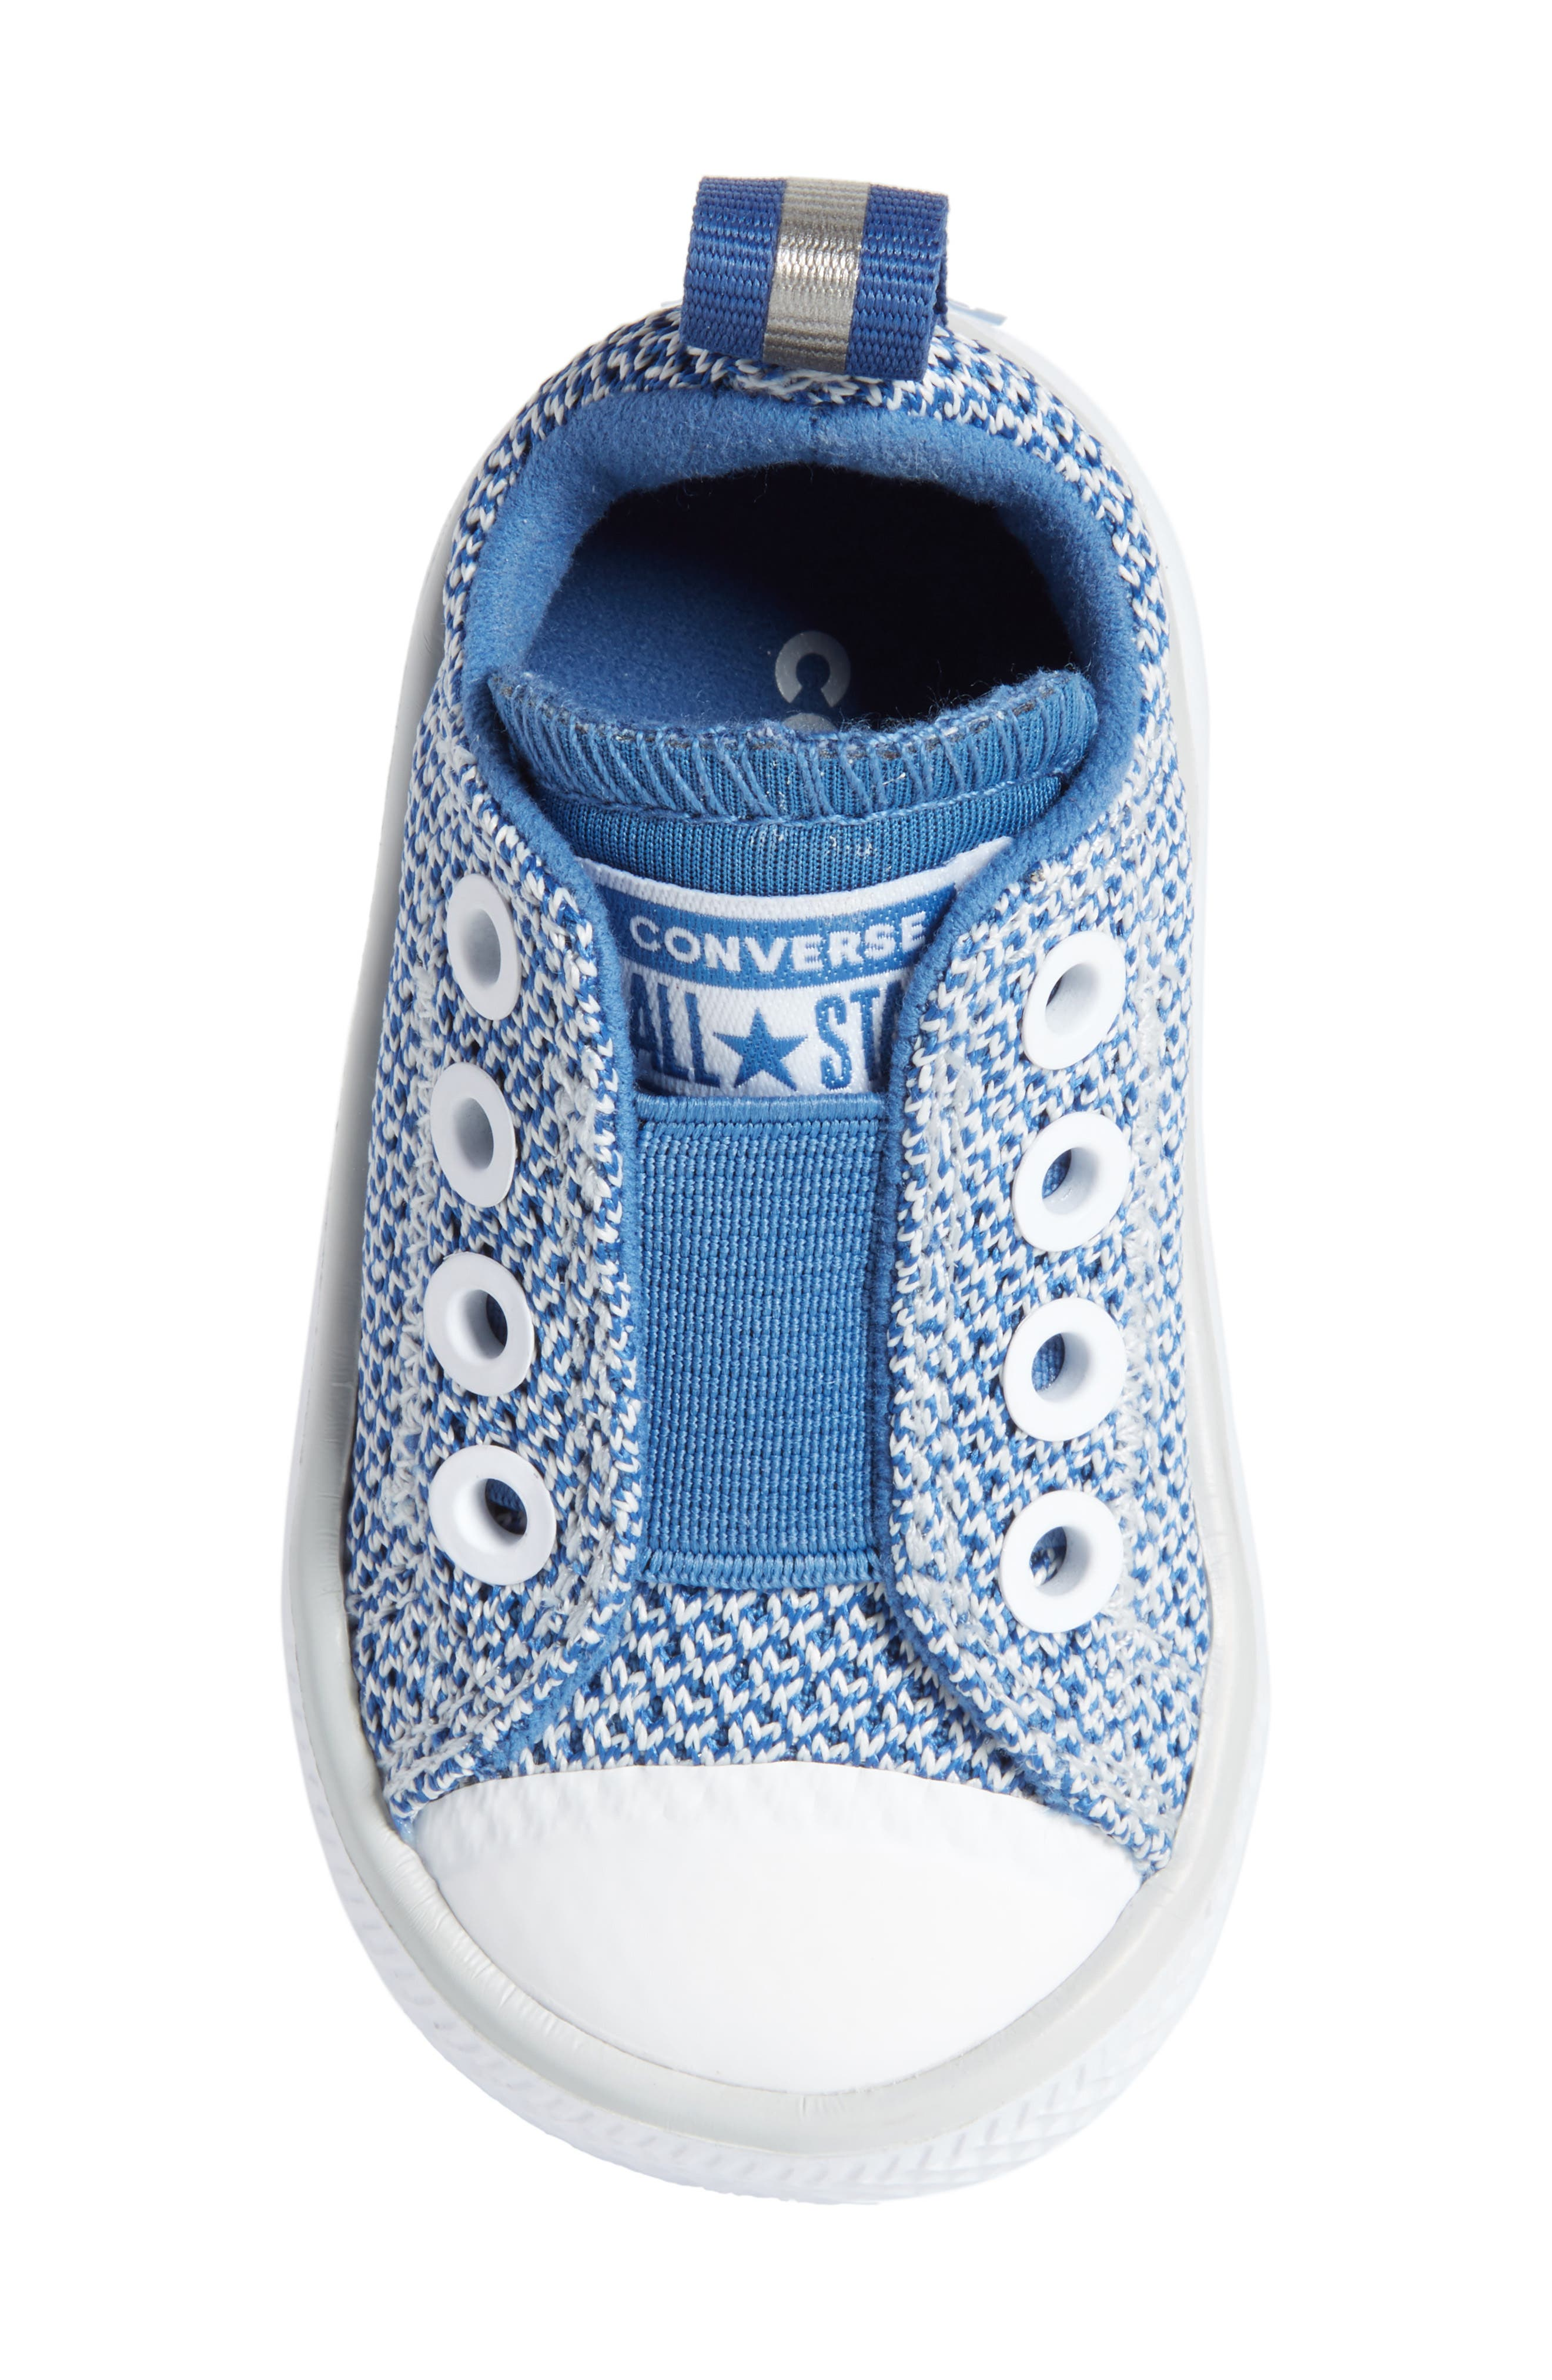 Chuck Taylor<sup>®</sup> All Star<sup>®</sup> Hyper Lite Slip-On Sneaker,                             Alternate thumbnail 5, color,                             020